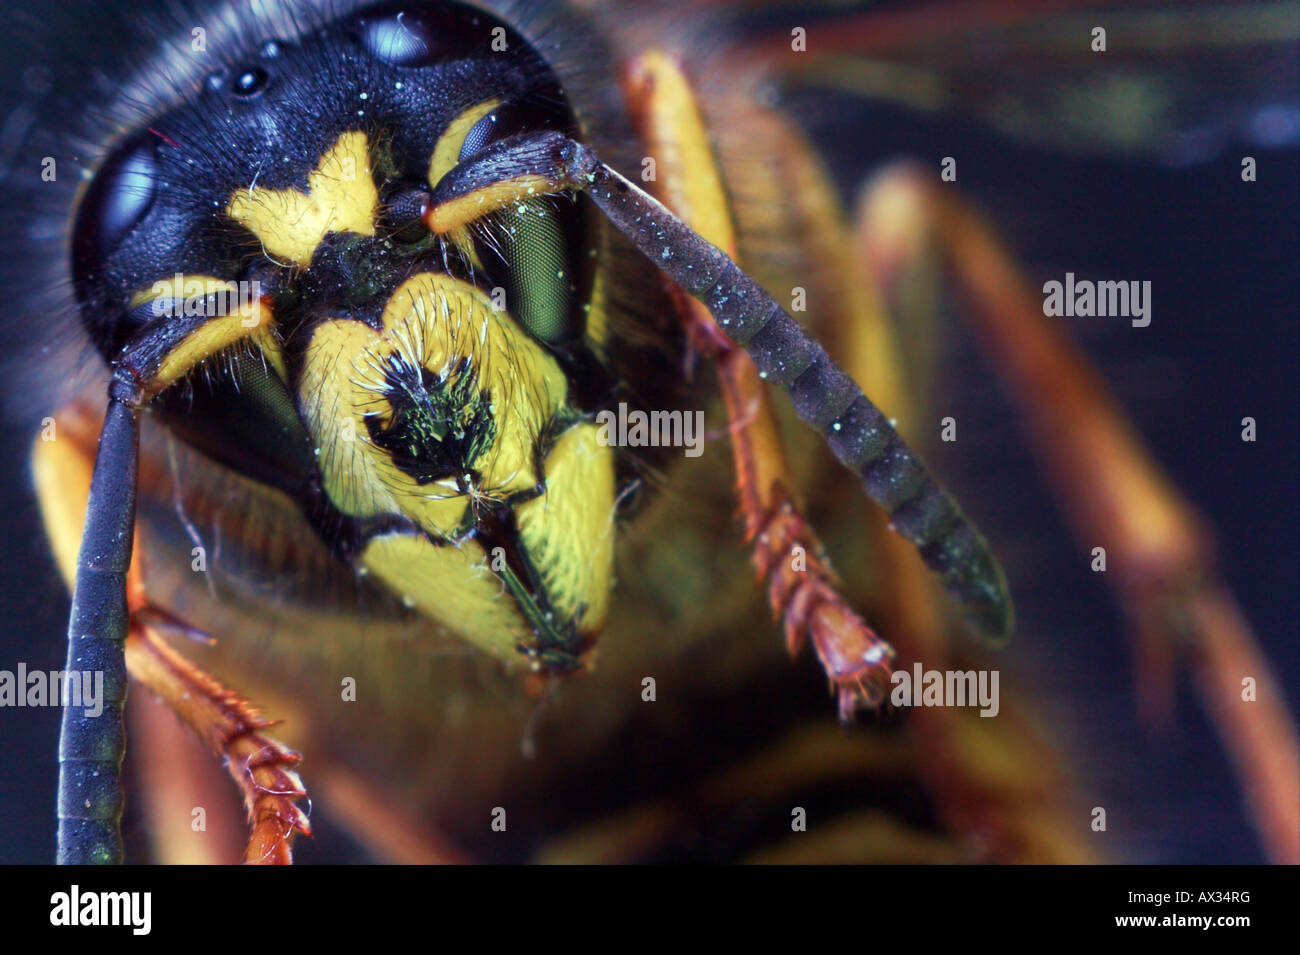 Wasp looking at the camera - Stock Image